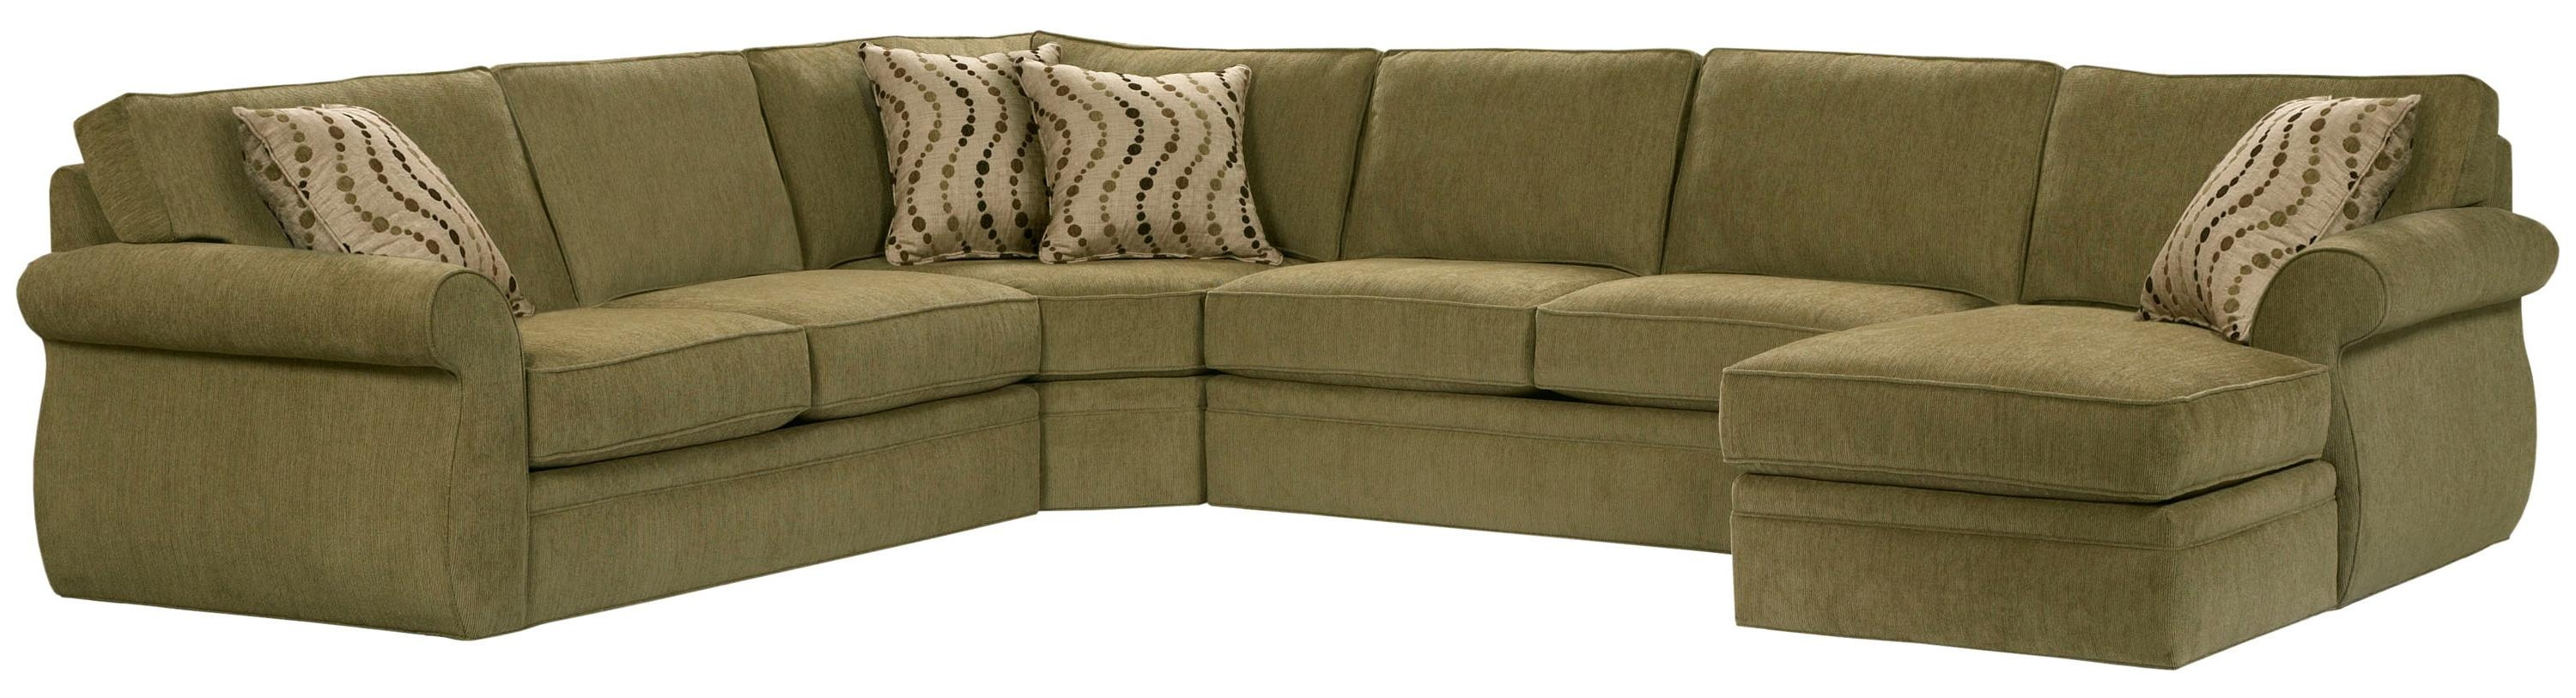 Broyhill Furniture Veronica Right Arm Facing Customizable Chaise For Broyhill Sectional Sofas (#7 of 12)